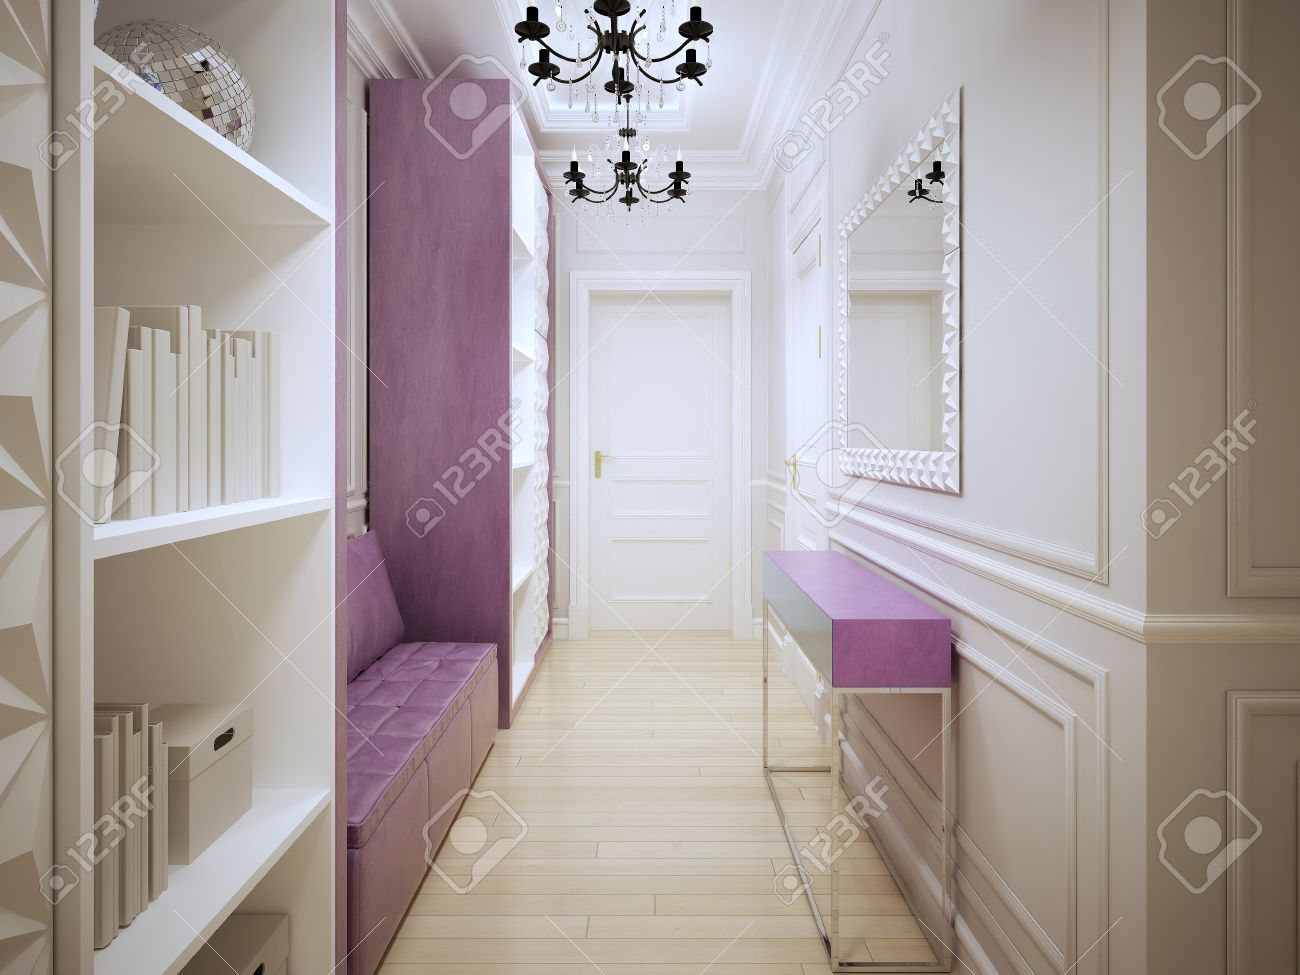 Design contemporain corridors. Hall d\'entrée avec placards, un canapé en  cuir rose tendre, console et grand miroir. 3D render